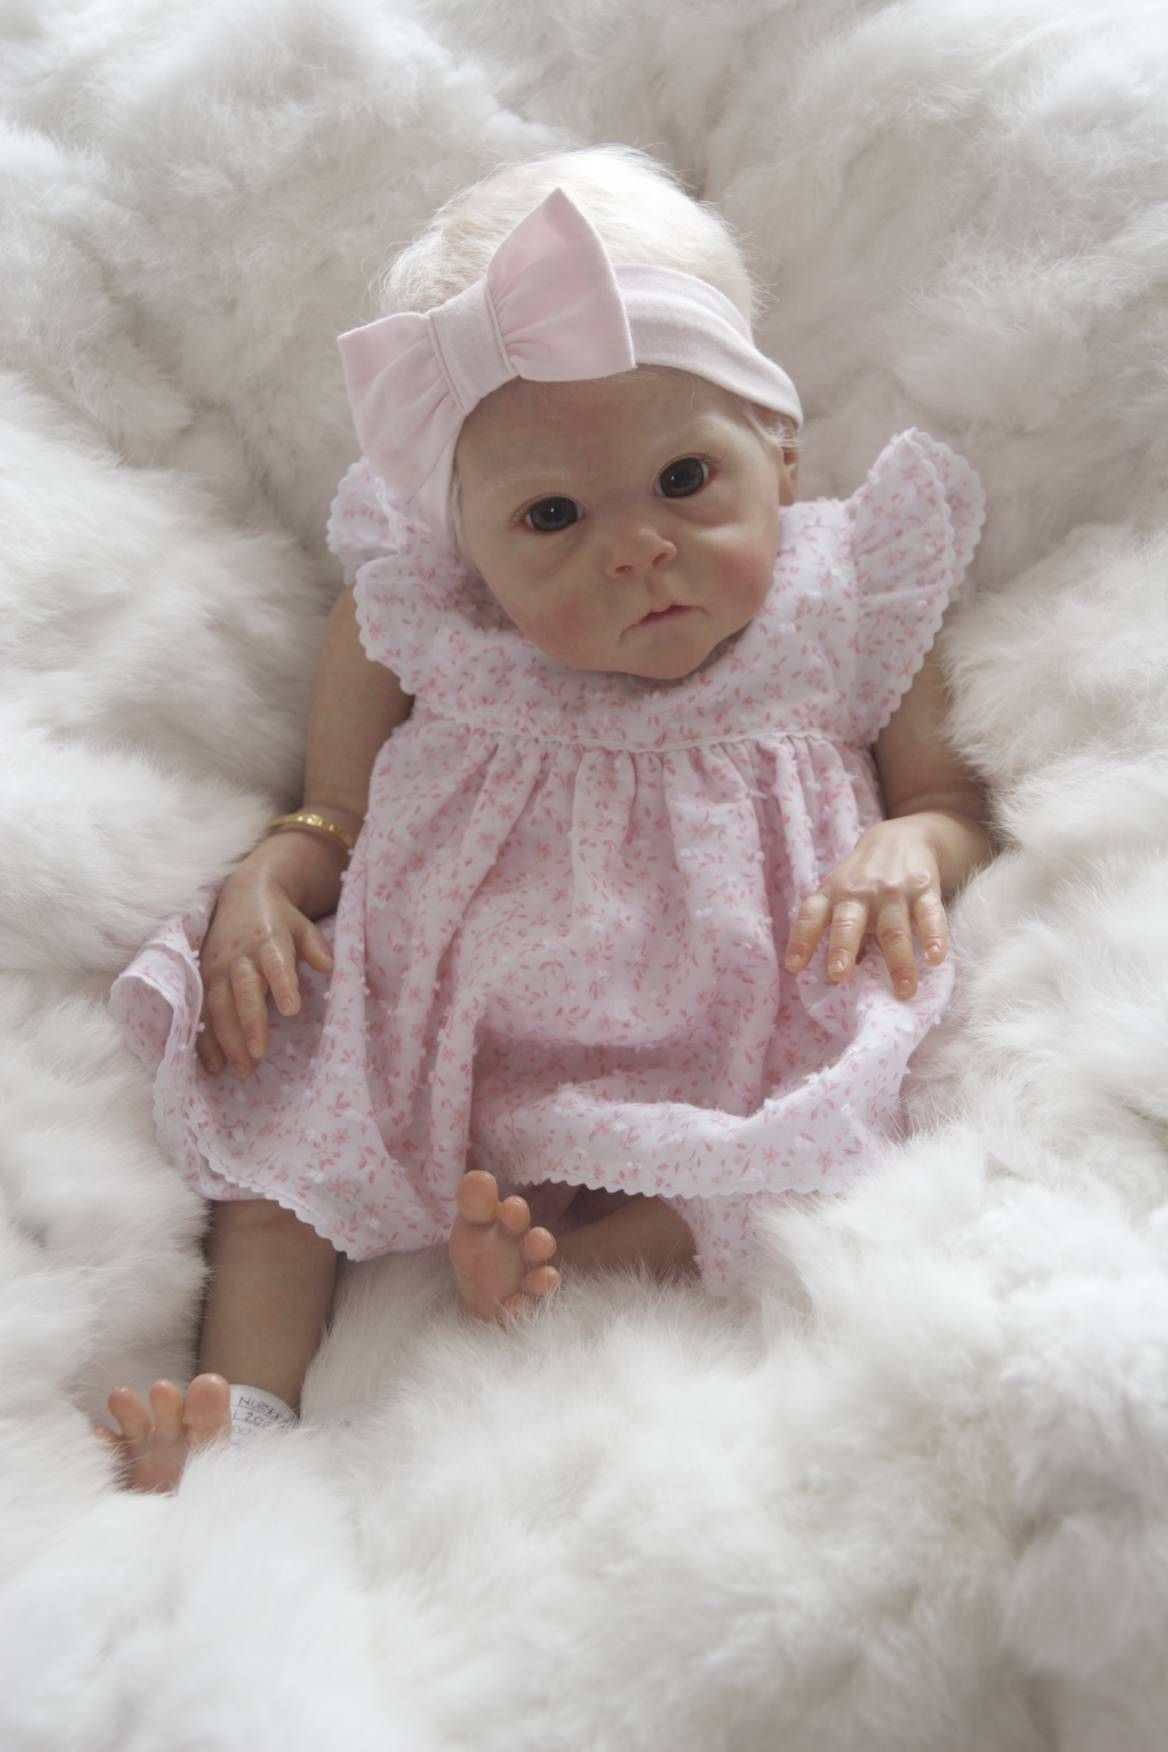 cornish babies - gallery | babies | pinterest | baby dolls, baby